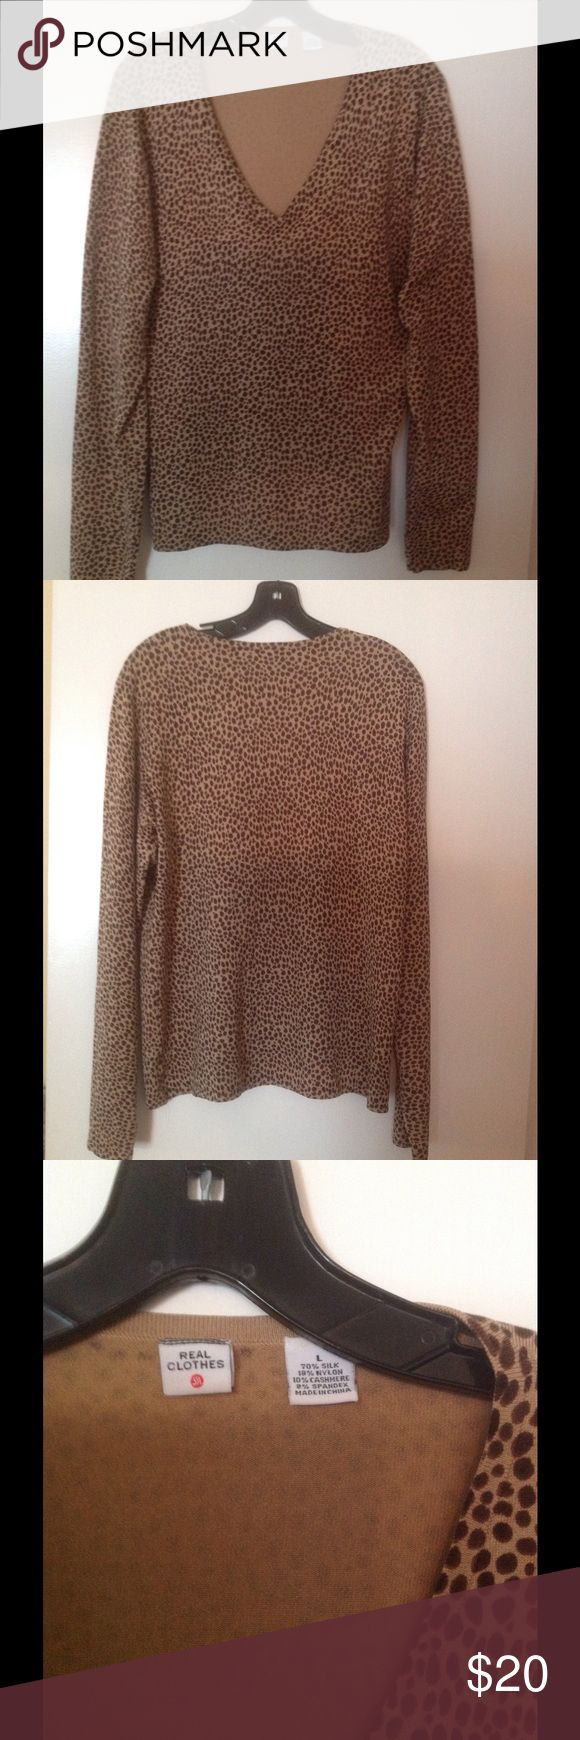 Brown and tan animal print, long sleeve top Beautiful animal print, V neck, long sleeve top! ❤️ It's soft and comfortable! ❤️ Top is made of 70% silk, 18% nylon, 10% cashmere and 2% spandex! ❤️ Top is used only once and in great condition! ❤️ Real Clothes Tops Blouses